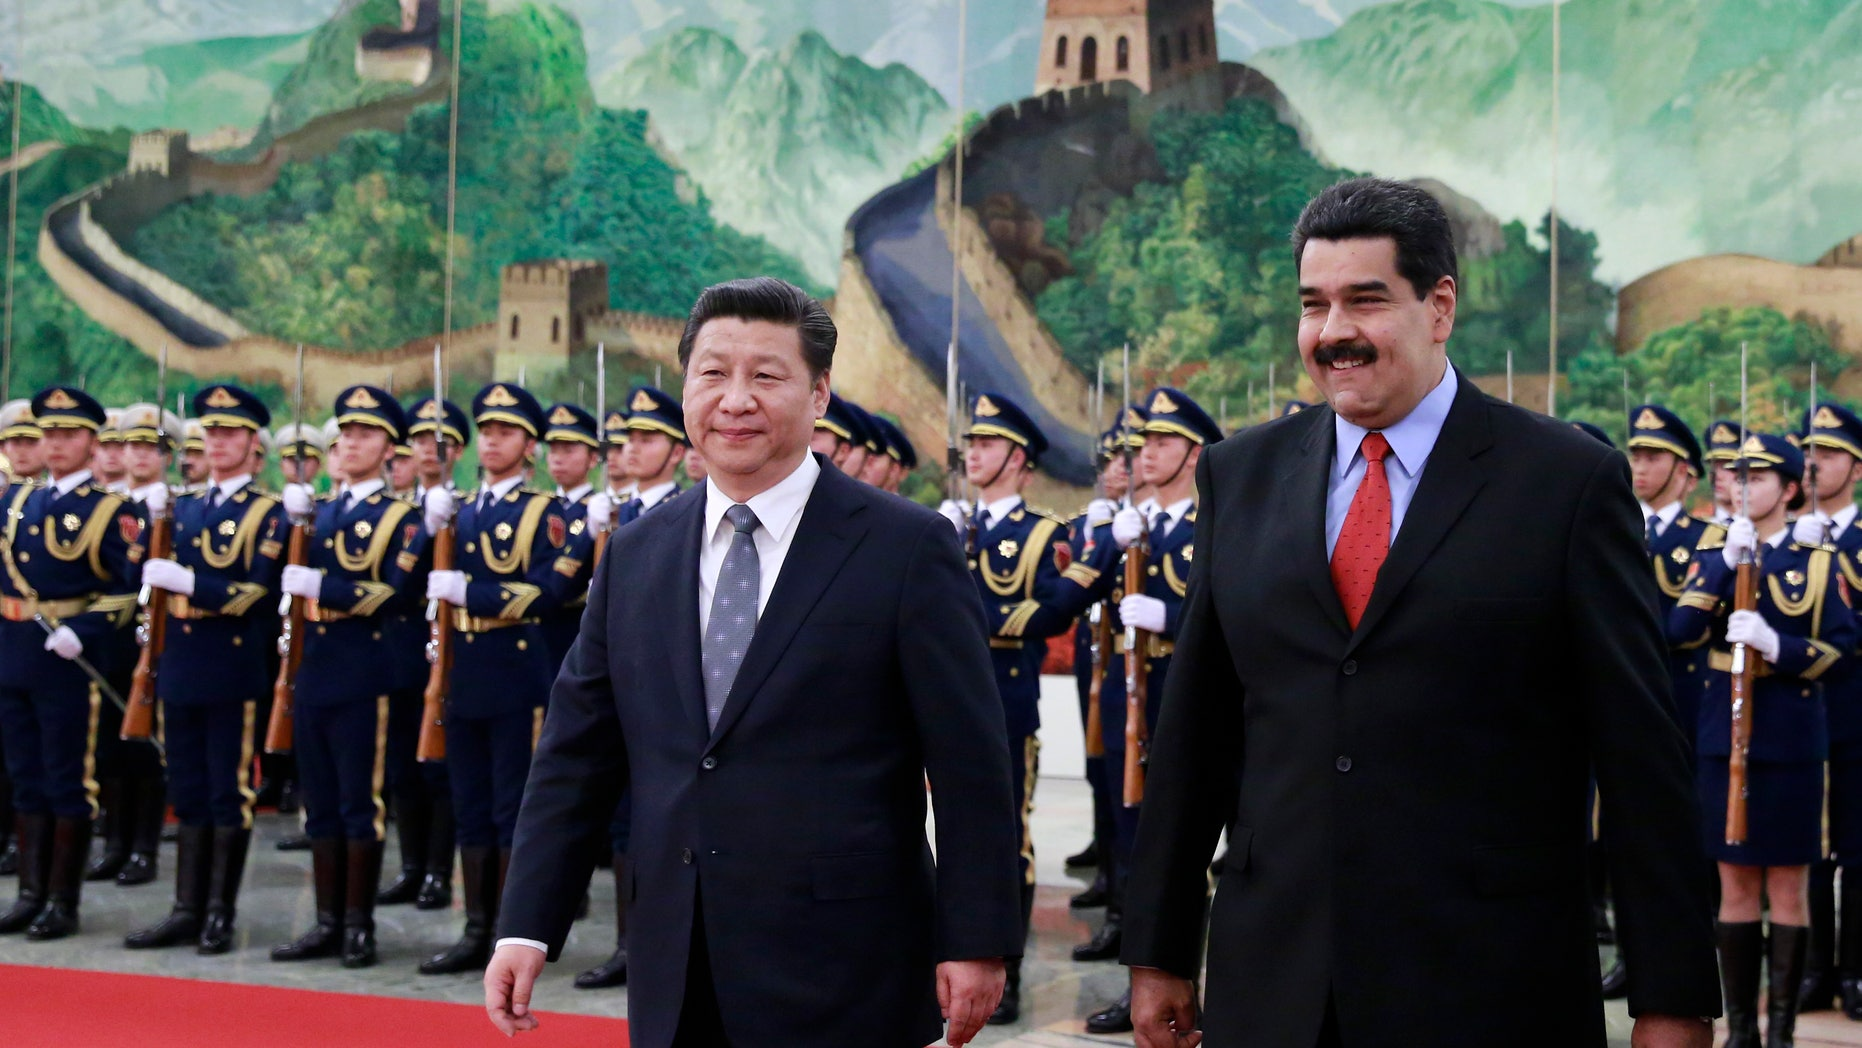 Venezuela's President Nicolas Maduro, right, walks with Chinese President Xi Jinping during a welcome ceremony at the Great Hall of the People in Beijing, China Wednesday, Jan. 7, 2015. (AP Photo/Andy Wong, Pool)